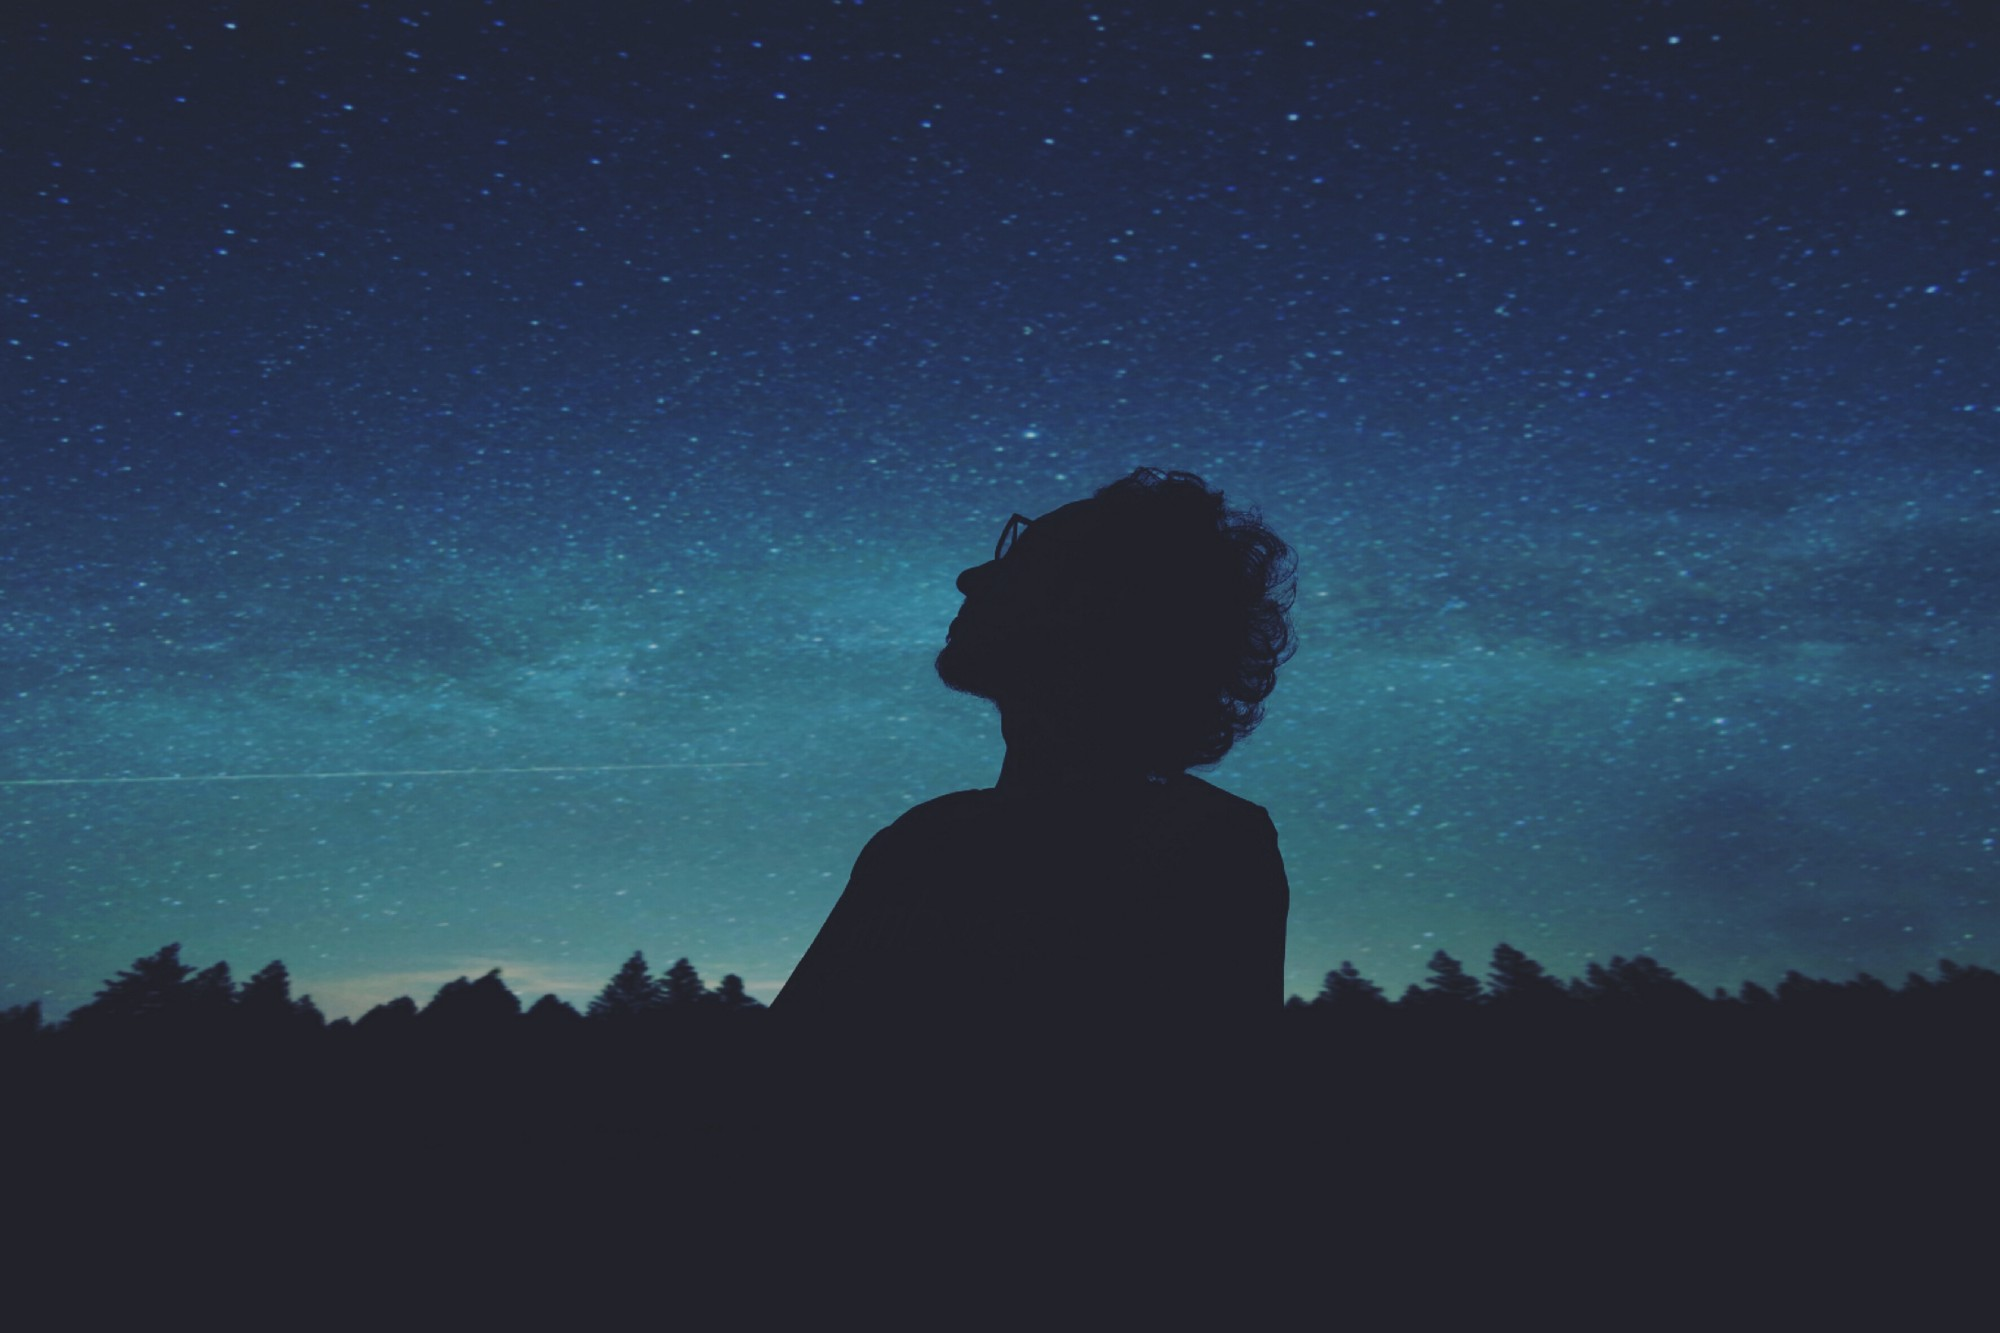 Silhouette of person with curly hair and glasses staring thoughtfully into a starlit night sky.